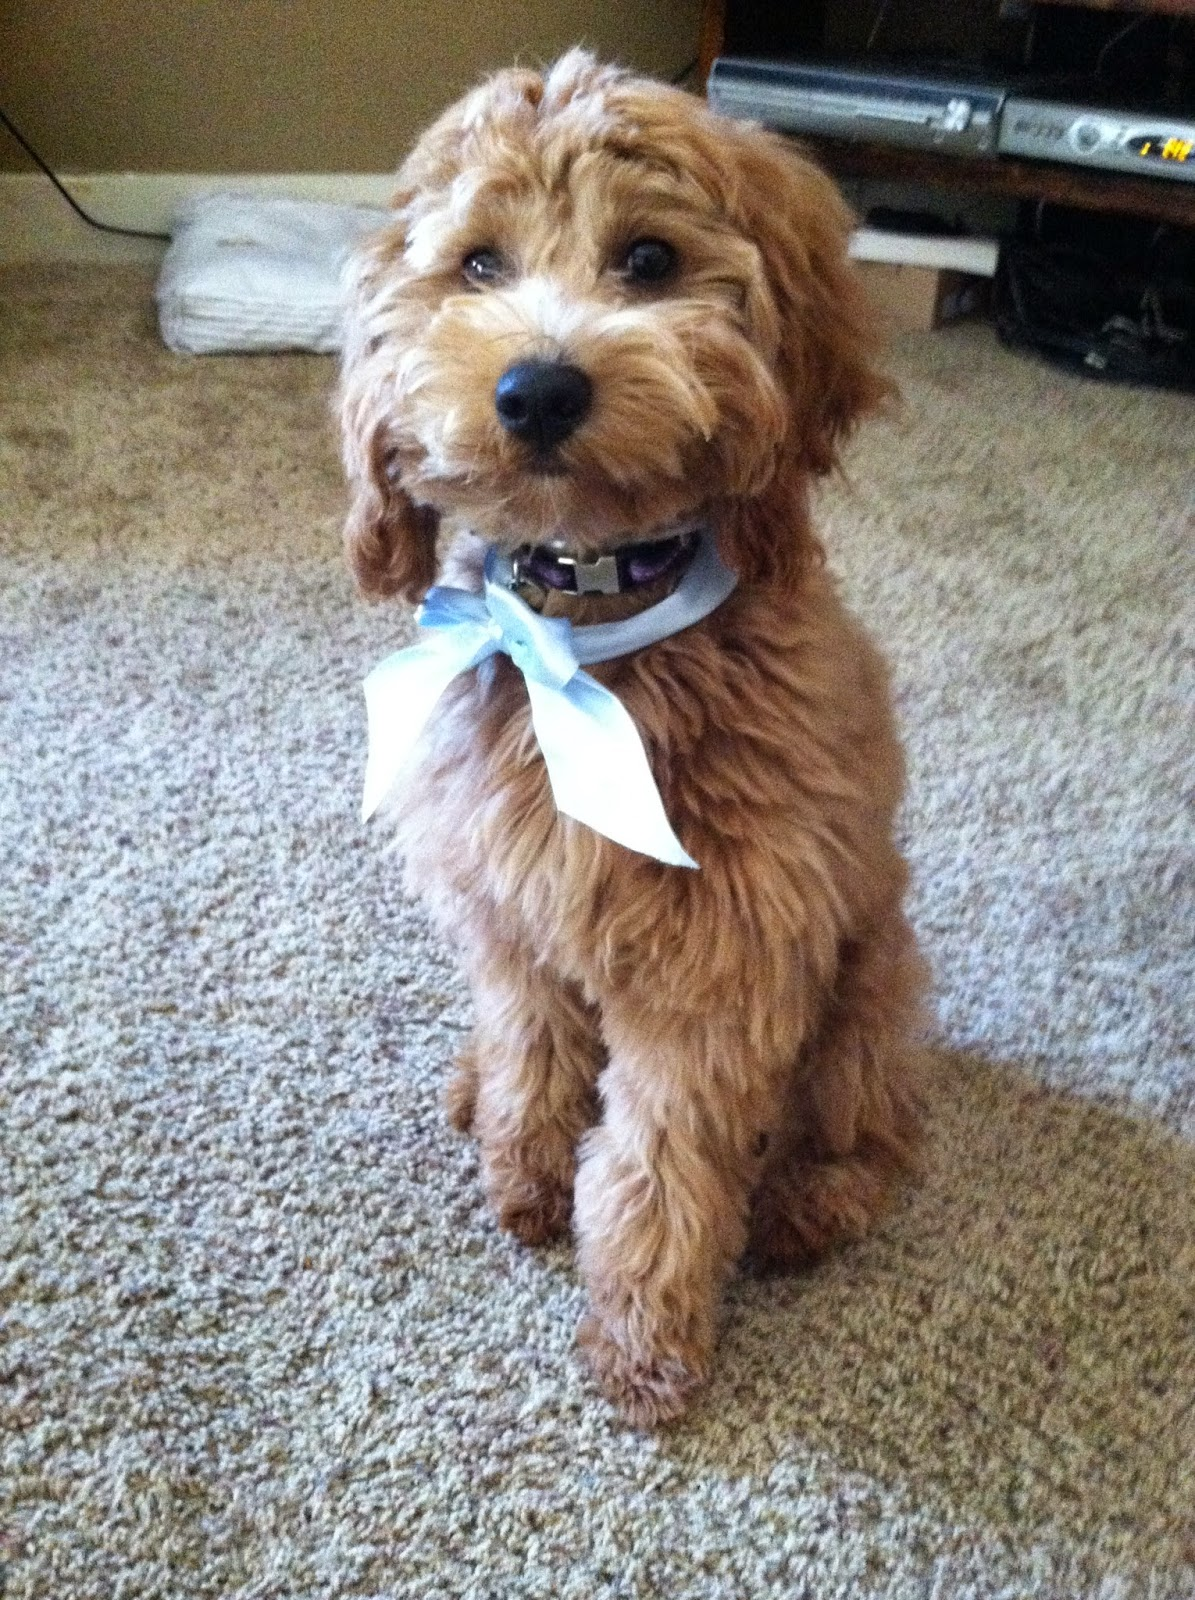 goldendoodle haircuts pets goldendoodle haircuts f1b goldendoodles by rosie what generation of goldendoodles